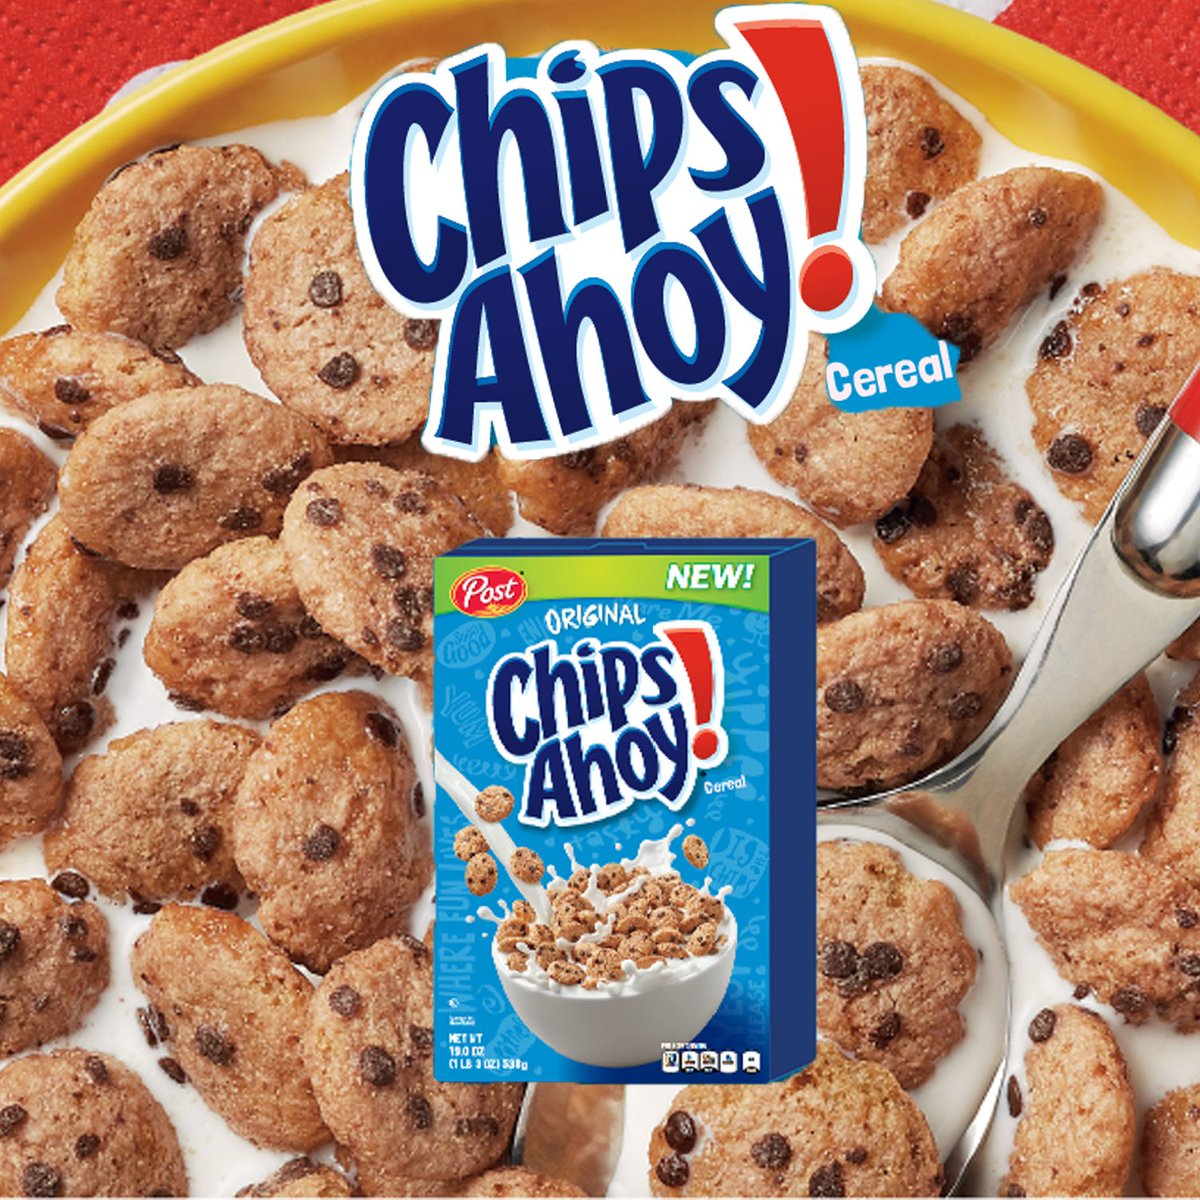 Pretentious Coming Out December Cereal Thomas On I Love Chips I Hate Cookie Chips Ahoy Cereal Smell Chips Ahoy Cereal Vegan Thomas On I Love Chips I Hate Cookie I Hope This Recipe Is Fully nice food Chips Ahoy Cereal